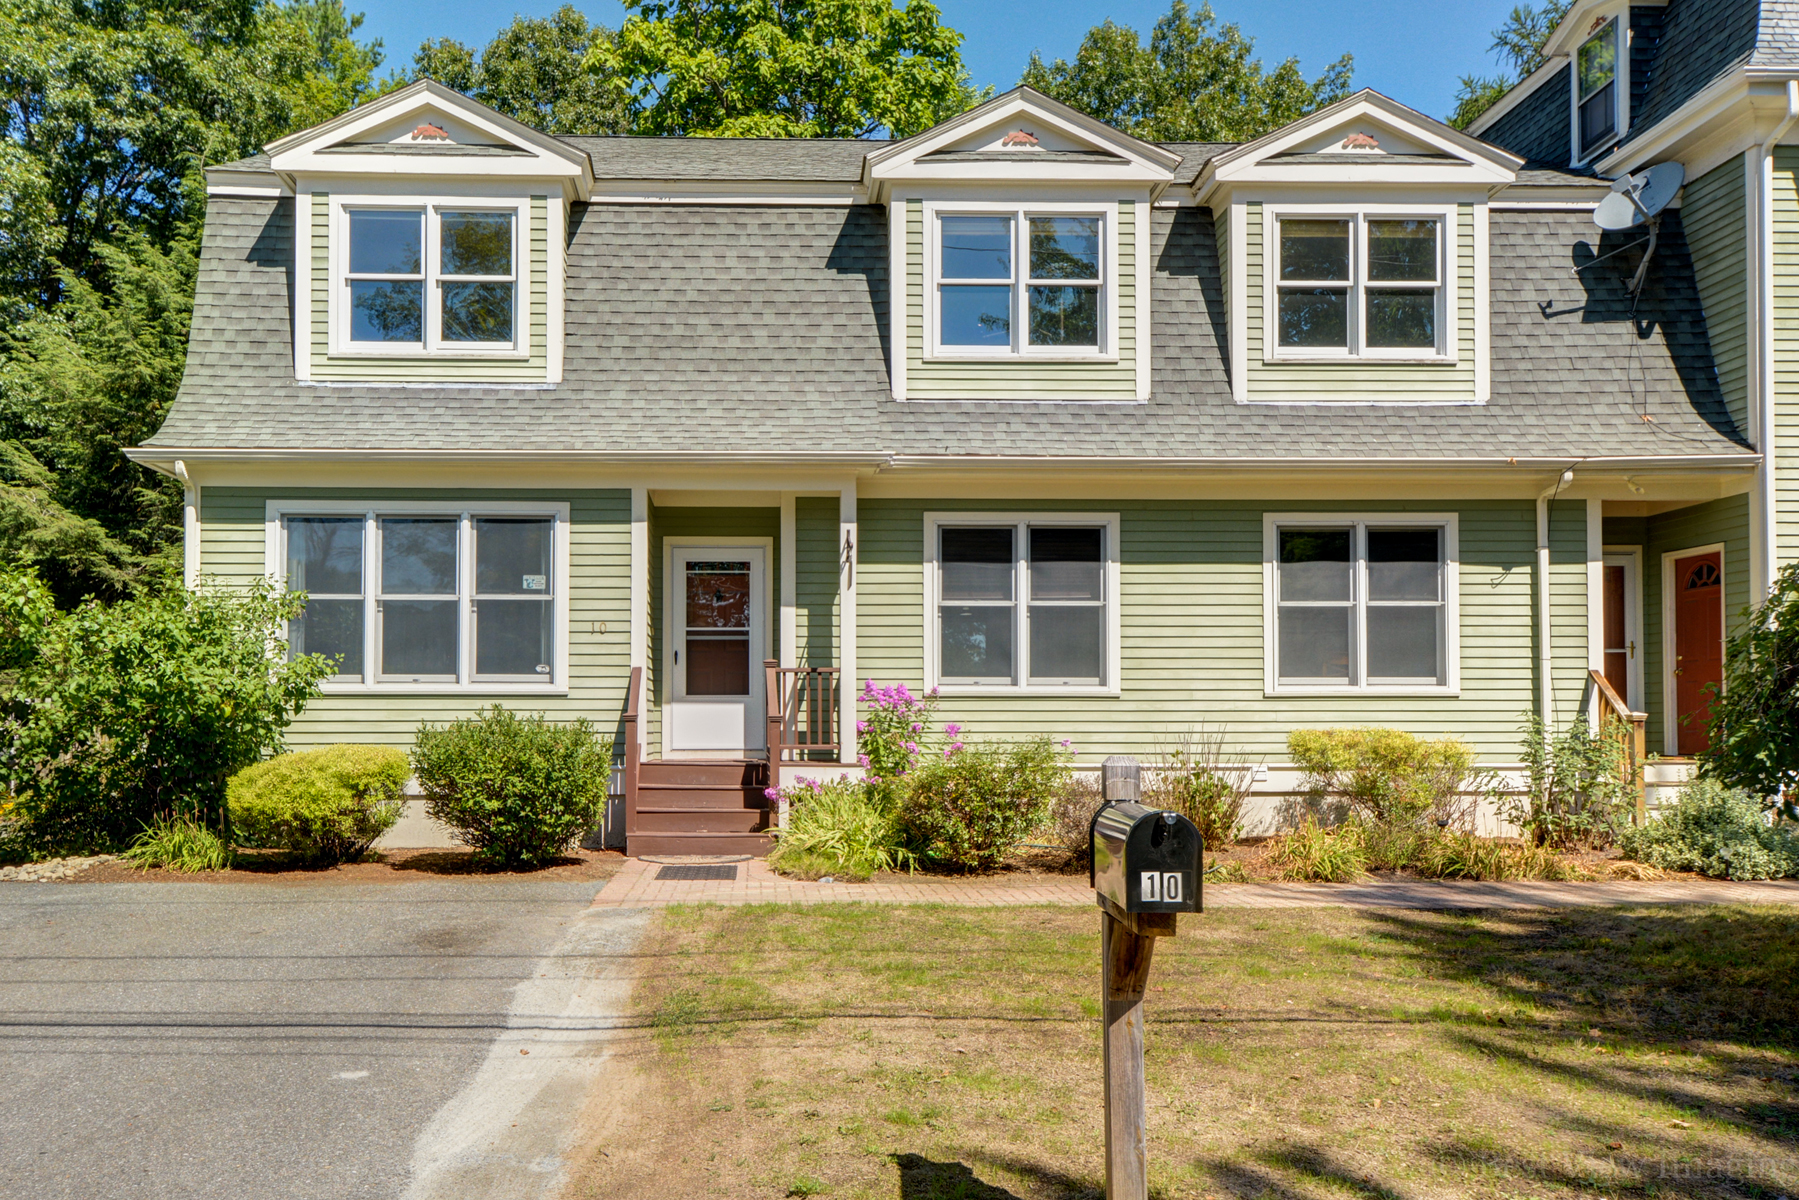 Vivienda unifamiliar por un Venta en One of a kind stylish home is available for the first time in popular West Conco 10 Highland St Concord, Massachusetts, 01742 Estados Unidos